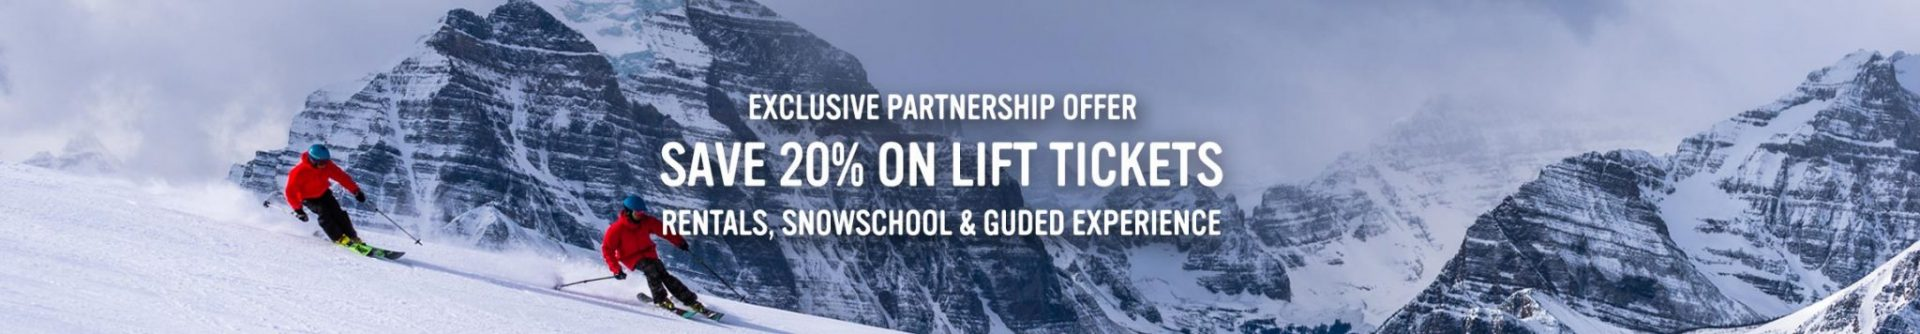 Save 20% on lift tickets, rentals, snowschool & guided experiences